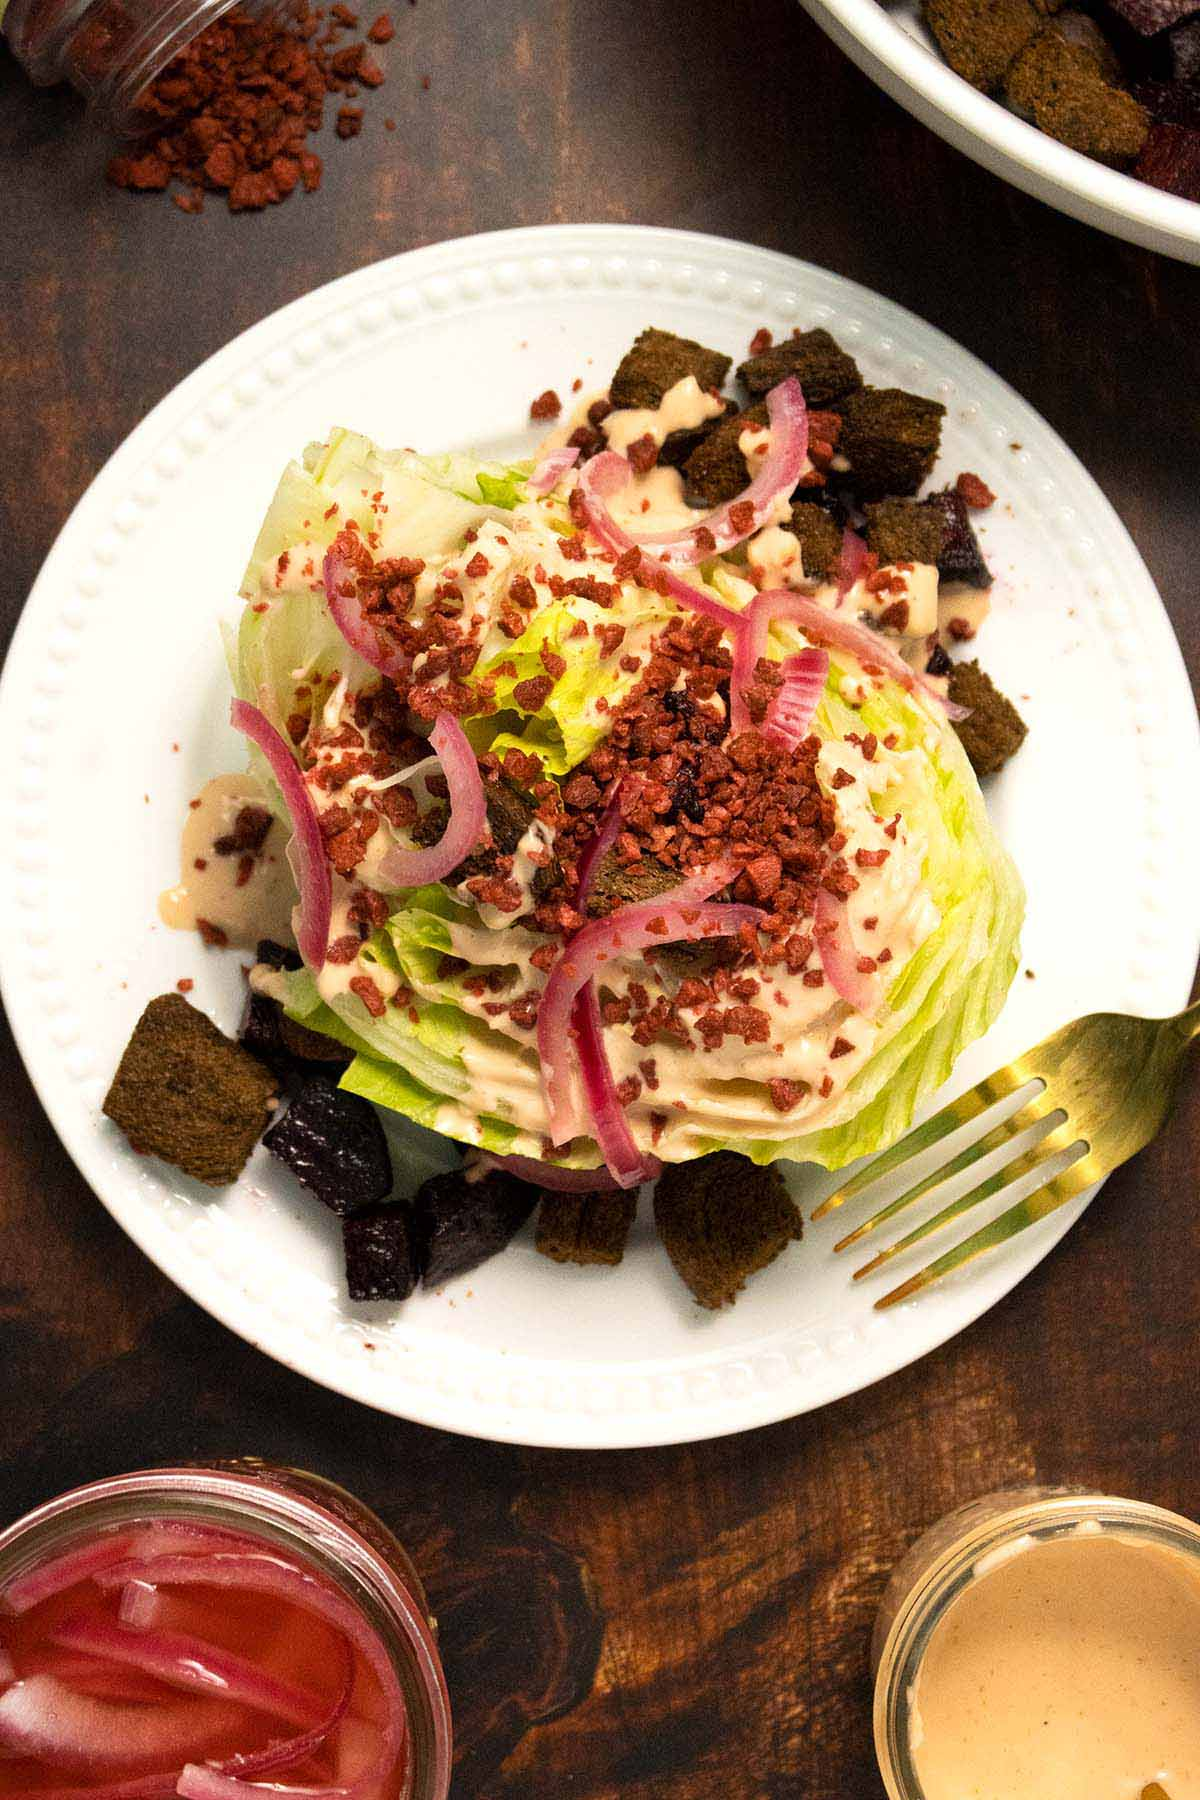 vegan wedge salad with dark croutons, pickled onions, bacon, and creamy dressing on a white plate